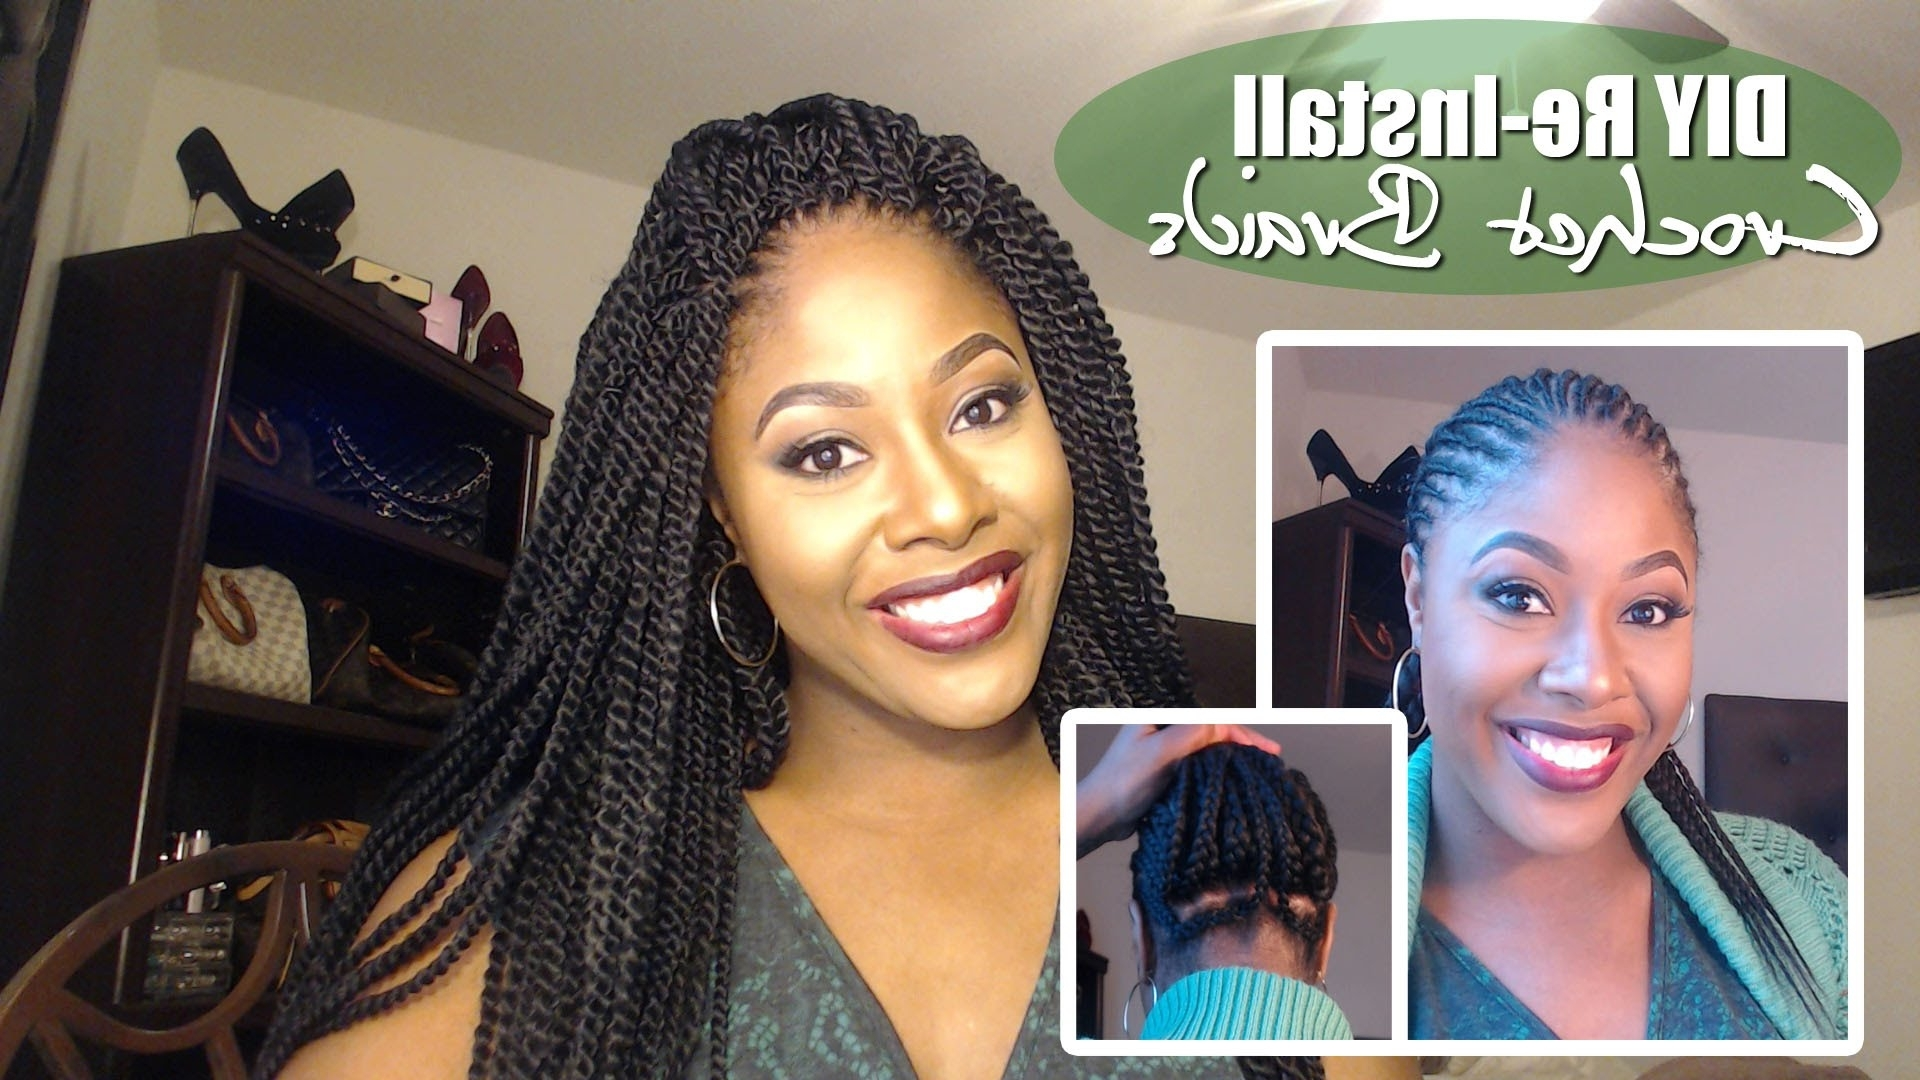 How To Diy: Crochet Braids Re Install Braid Pattern Explained: Under With Regard To Crochet Braid Pattern For Updo Hairstyles (View 12 of 15)